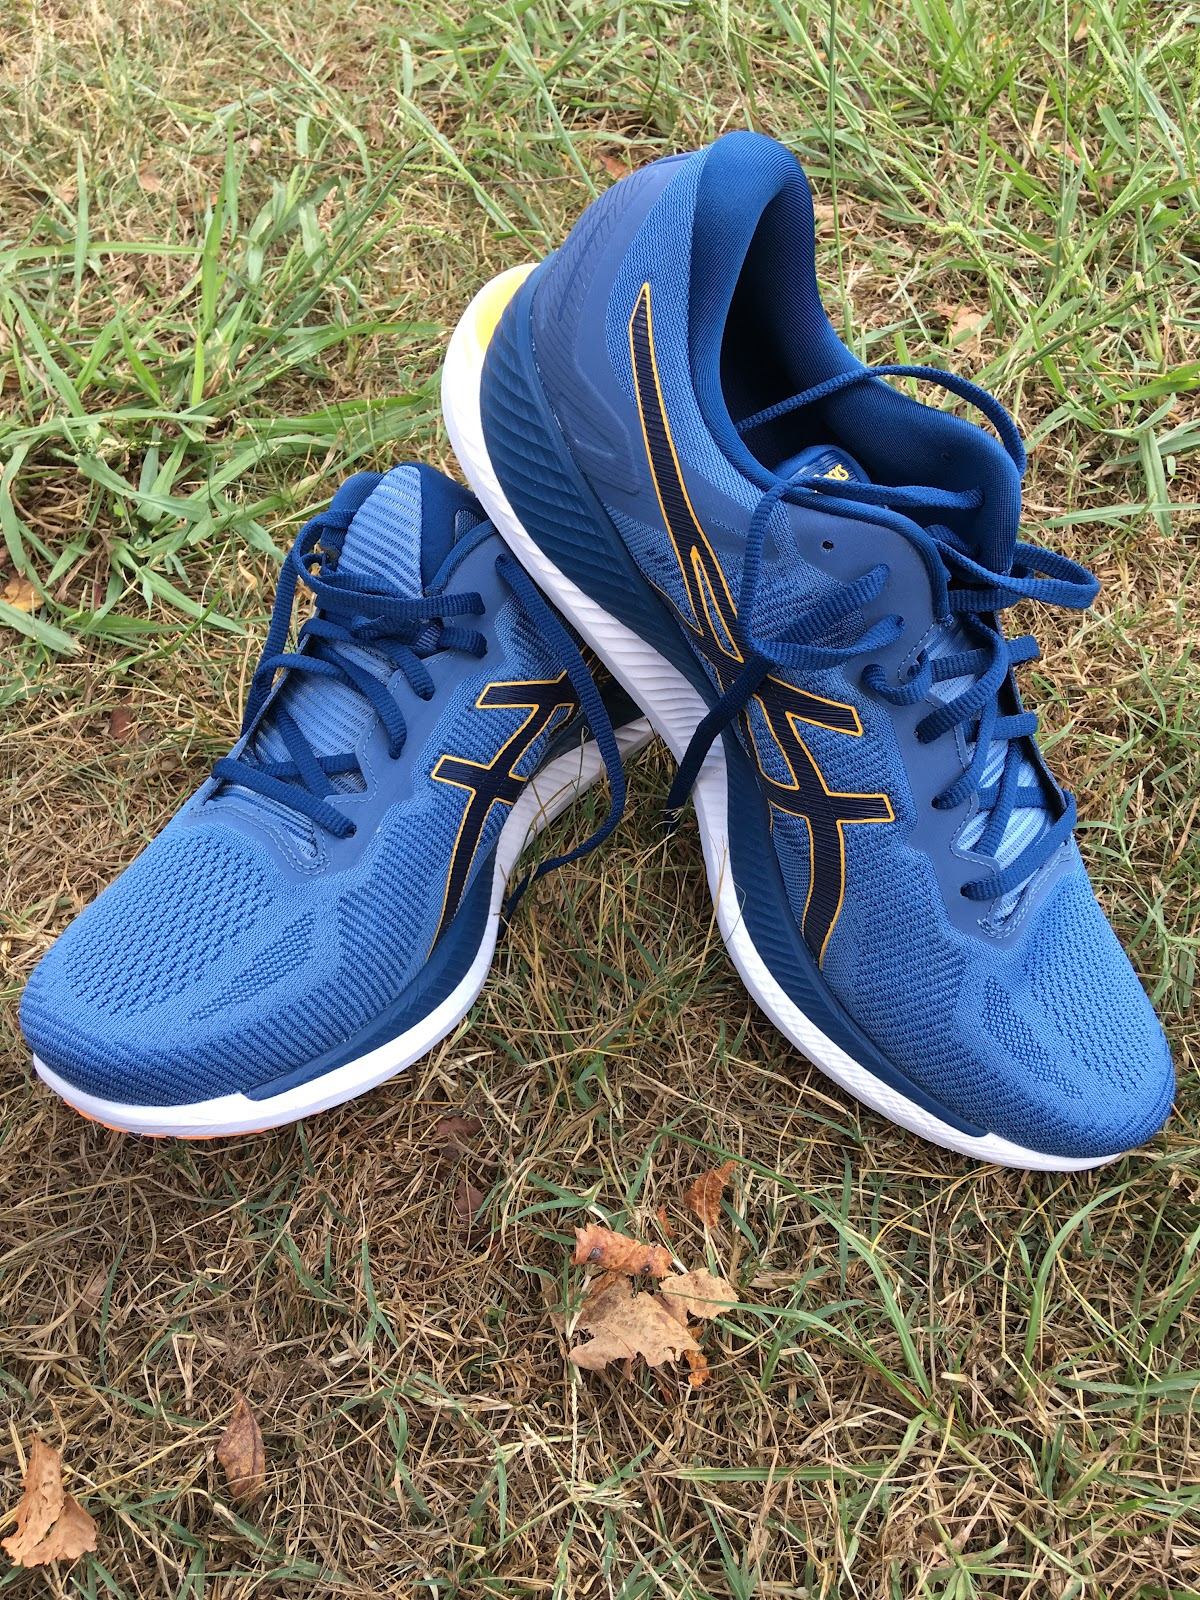 Becoming an Asics road tester – Jog around the Blog